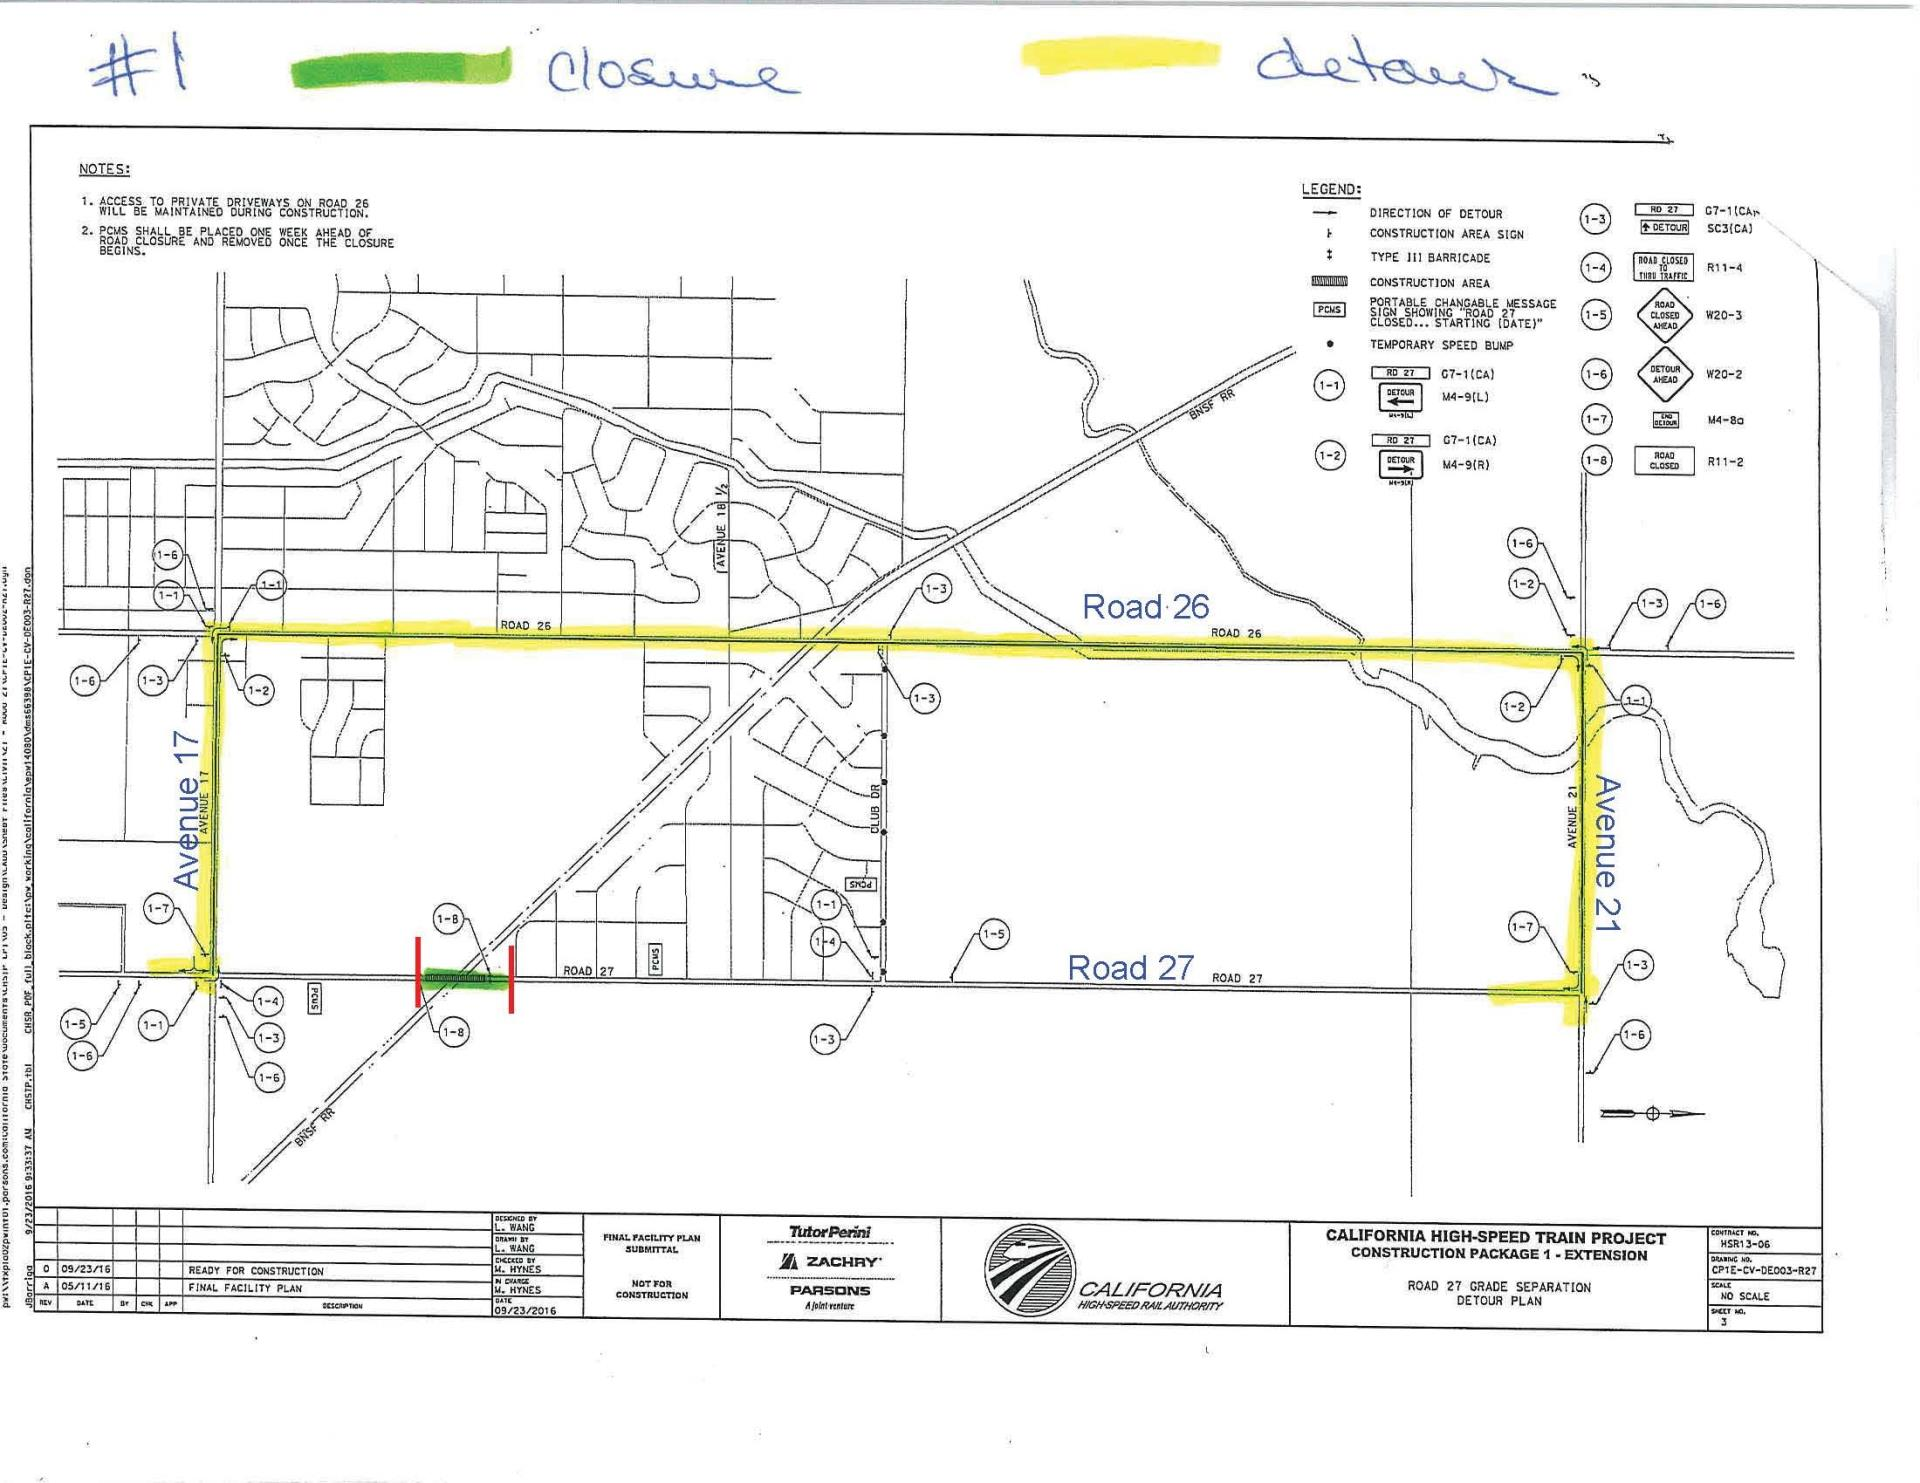 Road 27 Closure and Detour Map